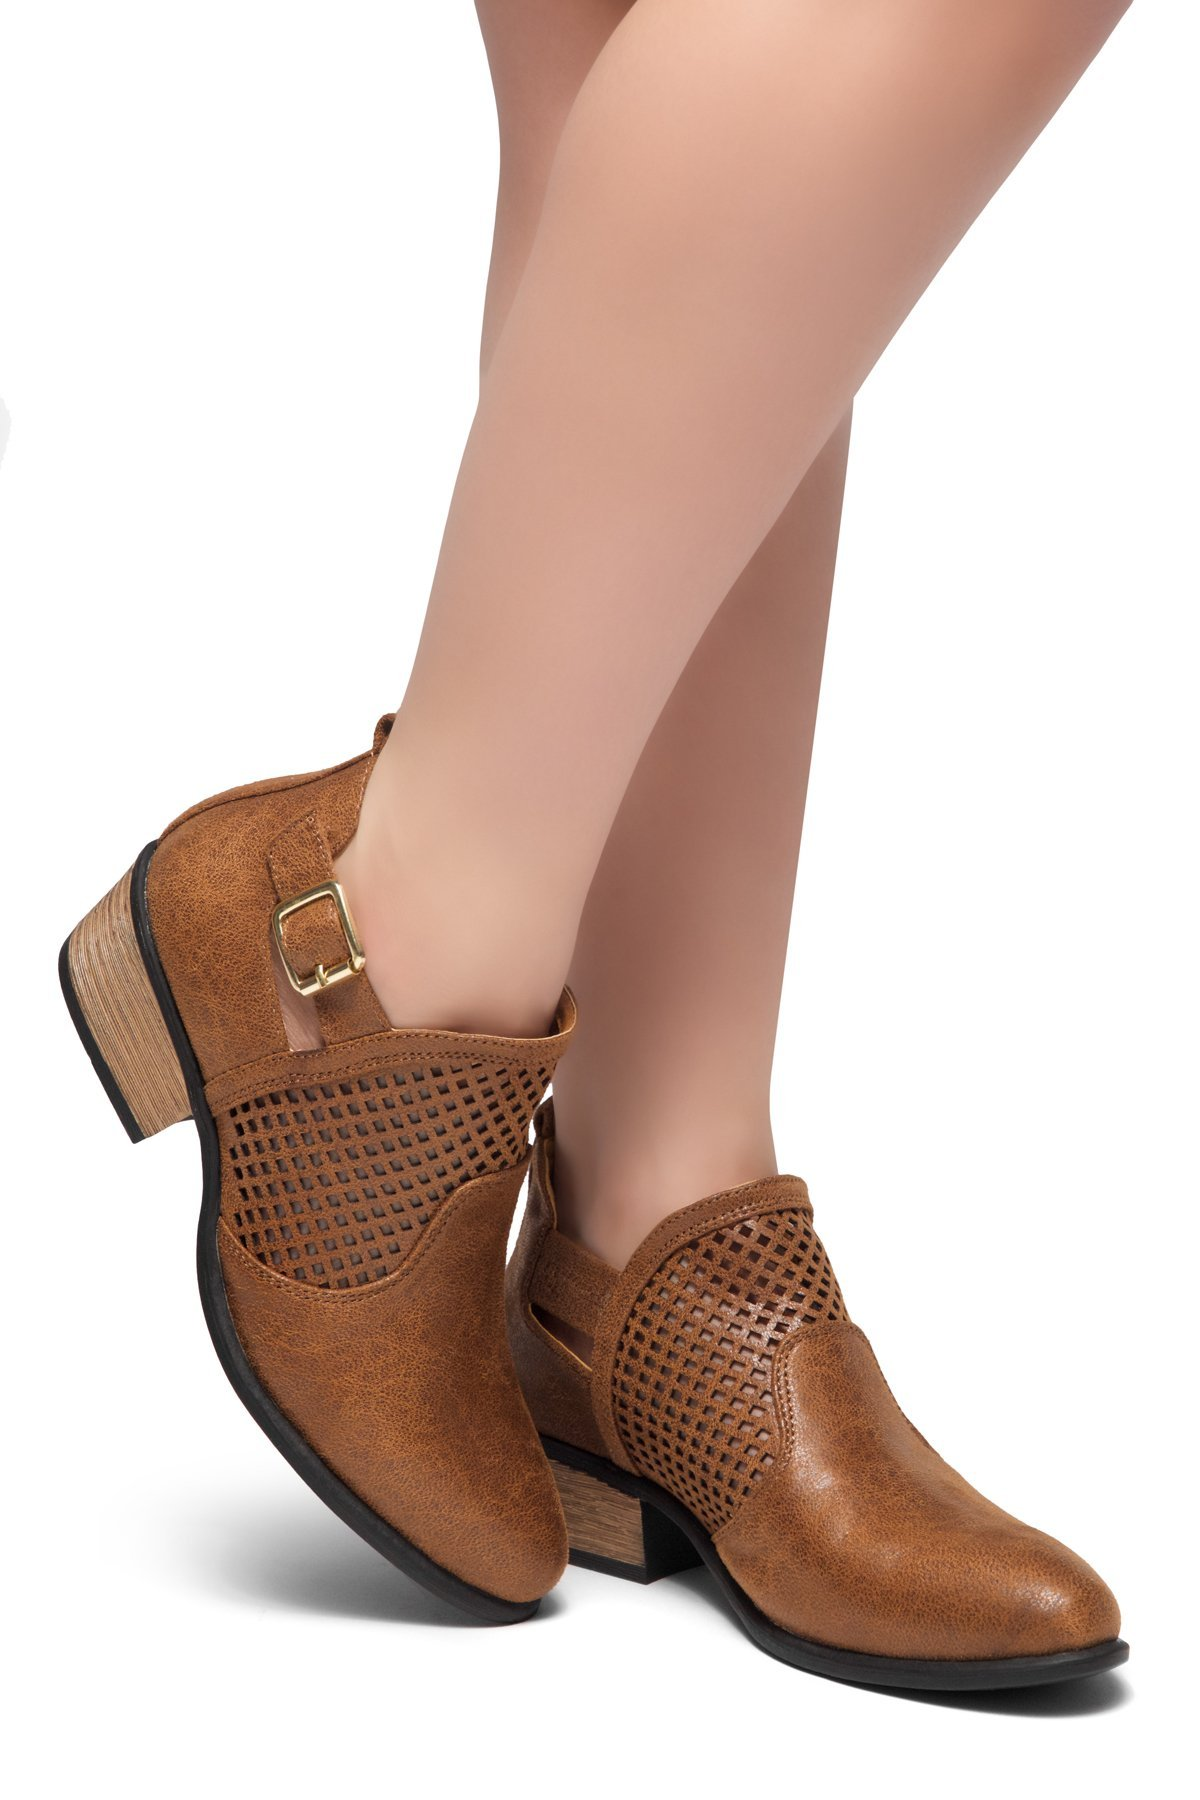 Herstyle Women's Milton - Casual Ankle Boot Cognac 8